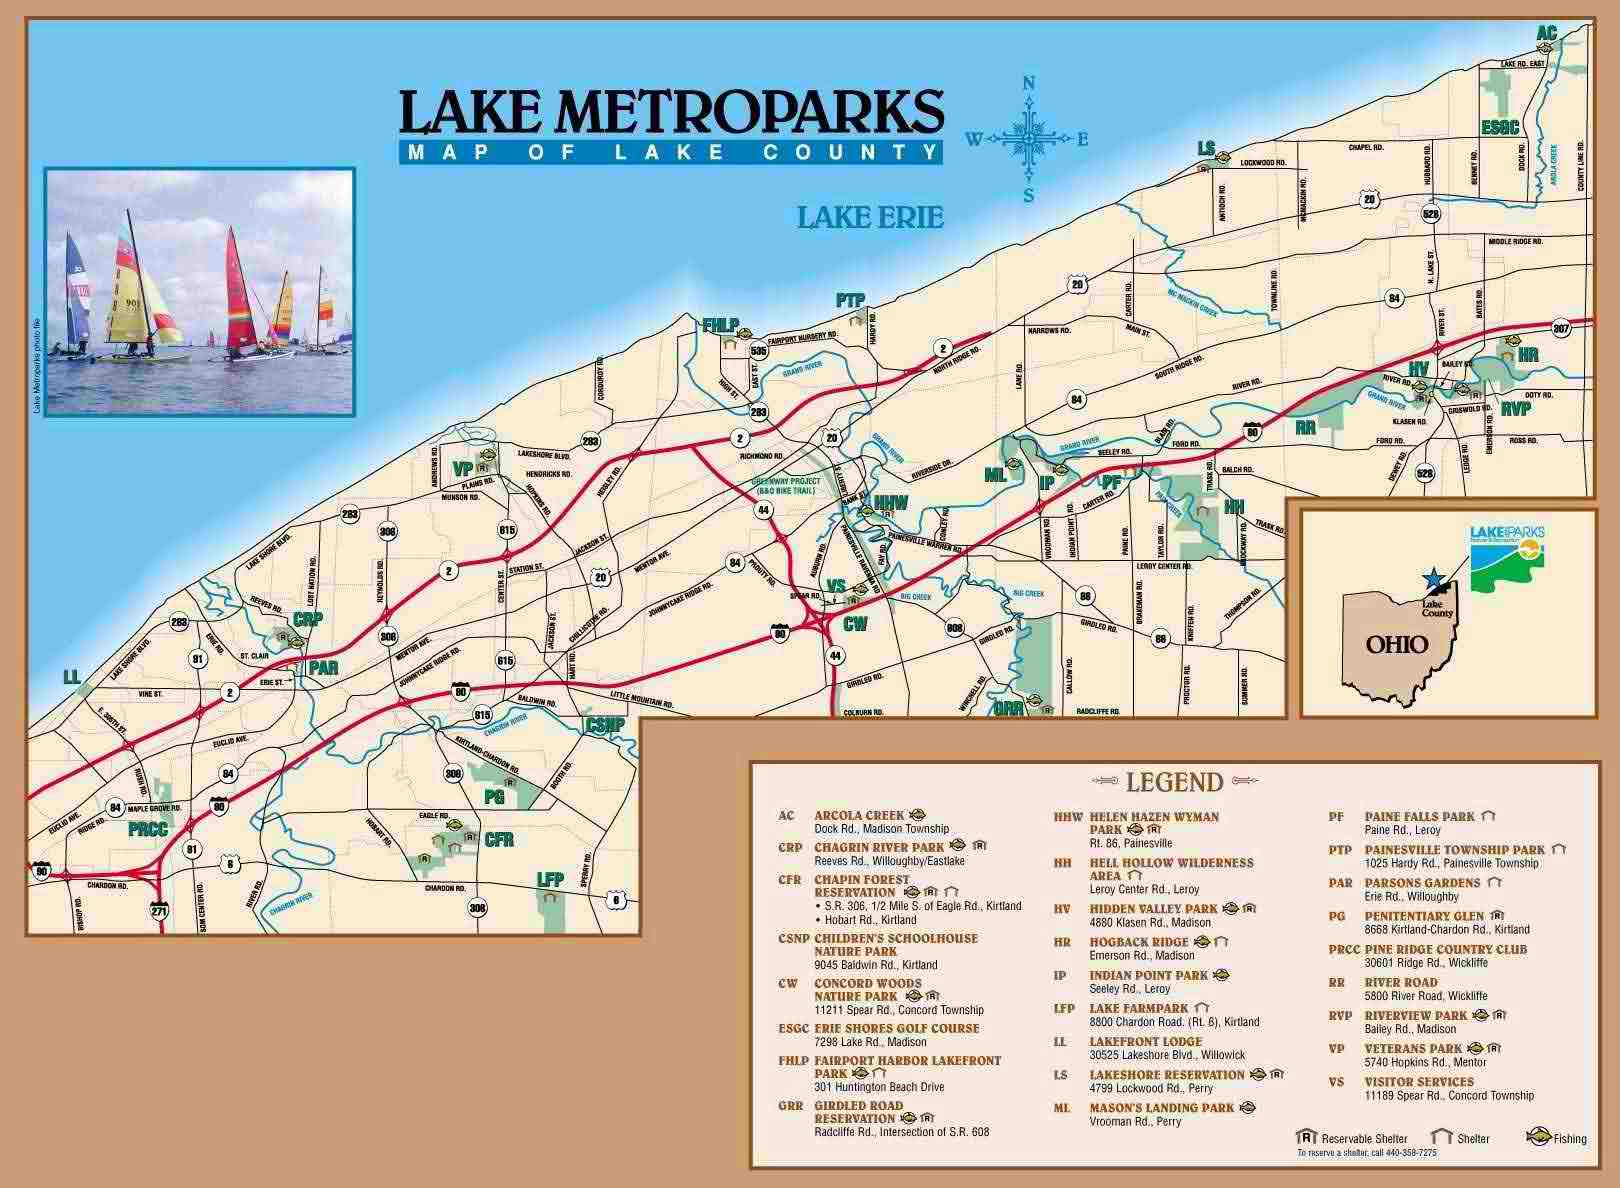 Indian Point Cleveland Metroparks Location Map